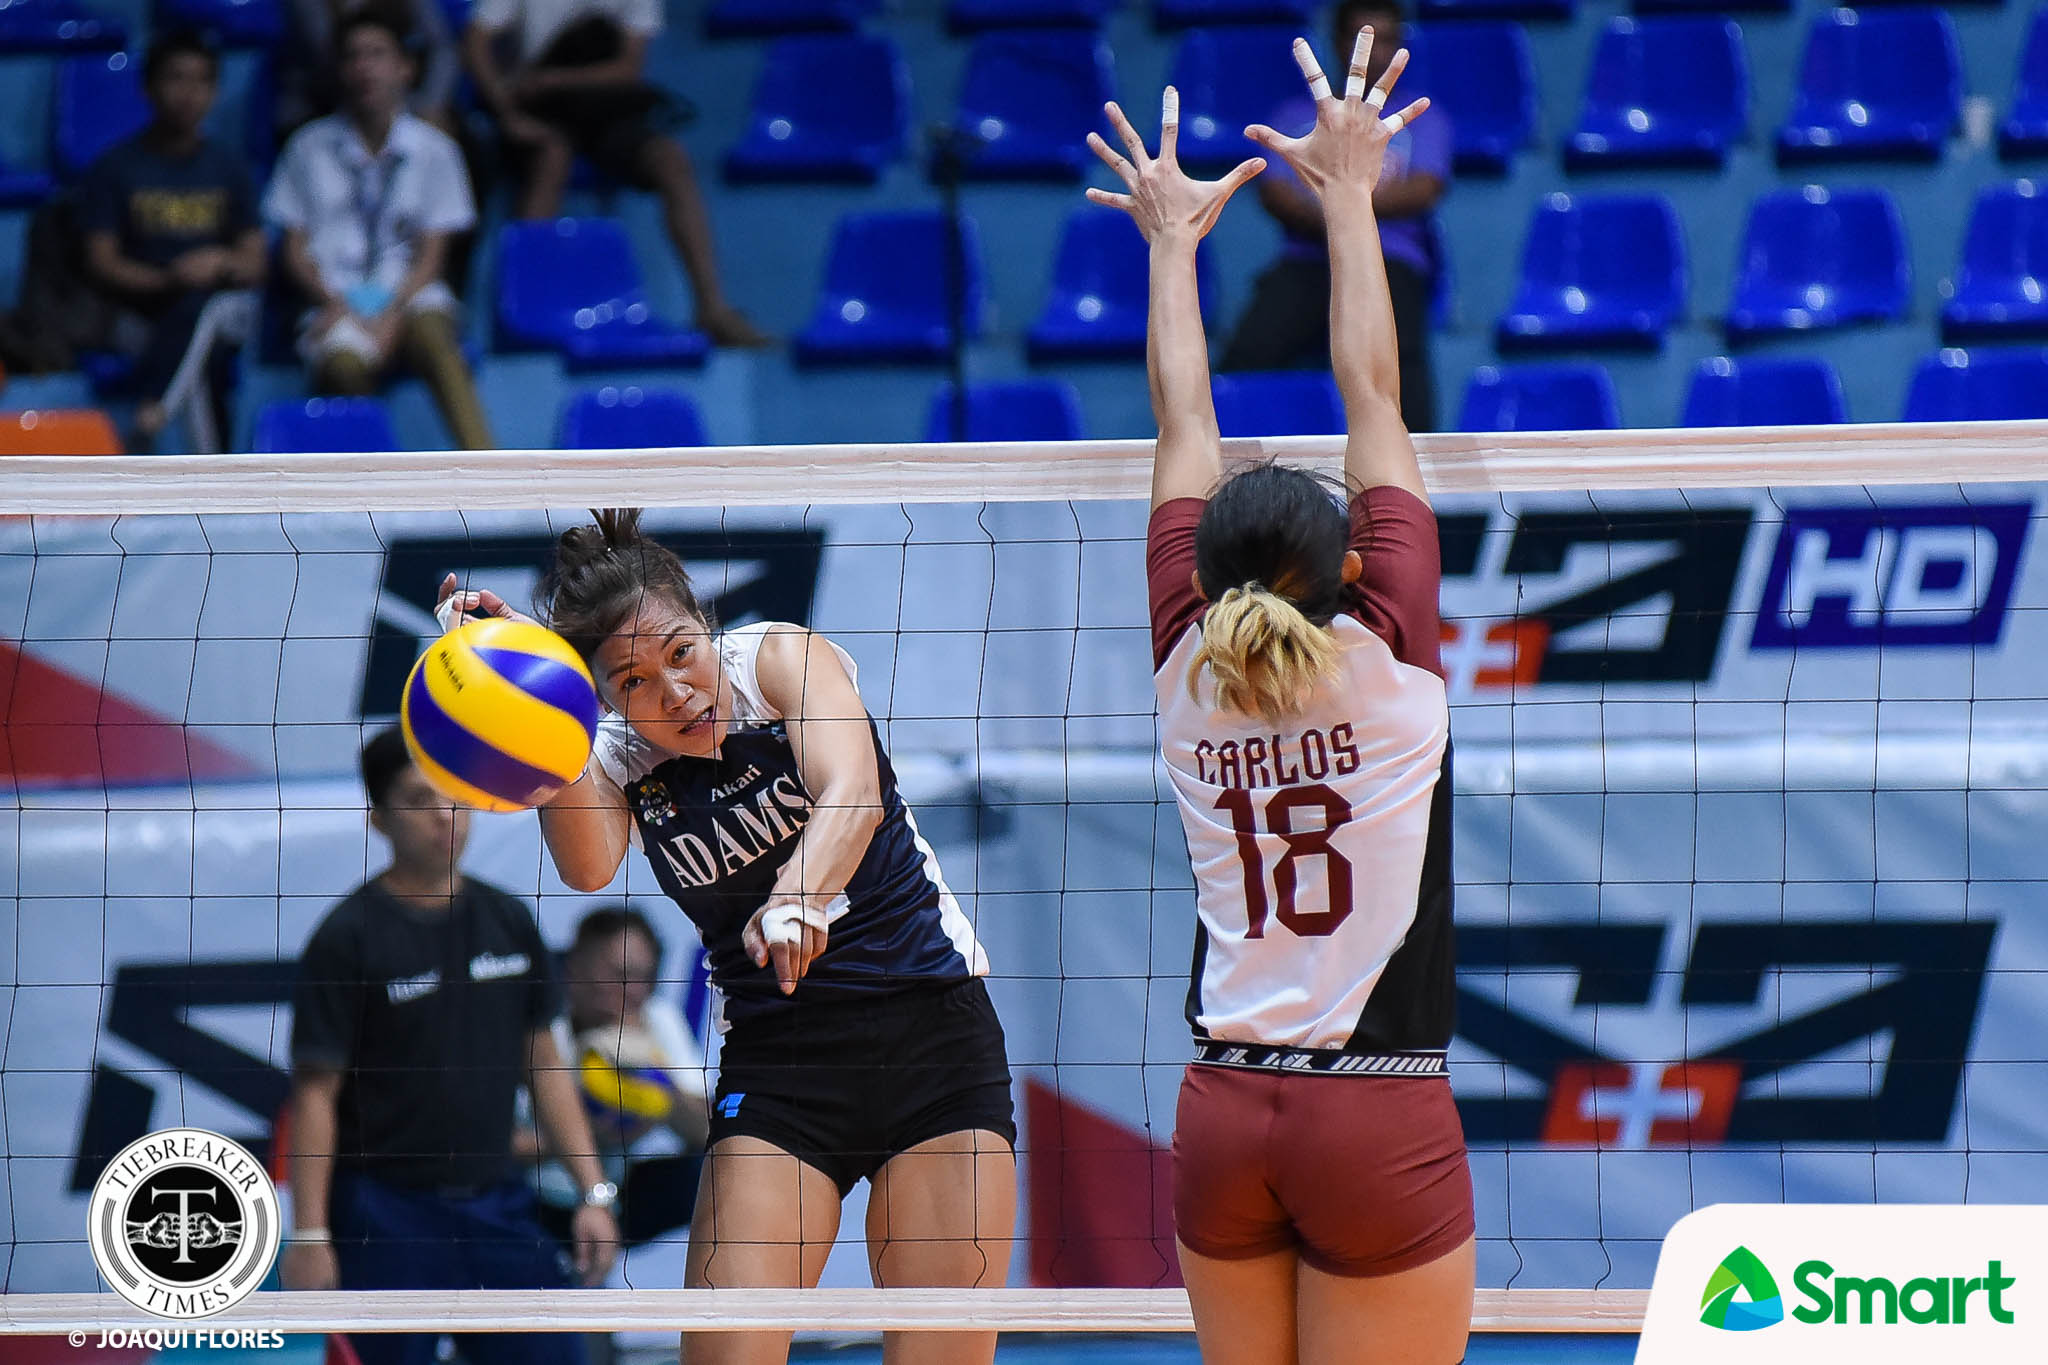 Philippine Sports News - Tiebreaker Times Lady Falcons make quick work of spiraling Lady Maroons AdU News UAAP UP Volleyball  UST Women's Volleyball UAAP Season 80 Women's Volleyball UAAP Season 80 Tots Carlos Thang Ponce Mylene Paat Jema Galanza Godfrey Okumu Fhen Emnas Air Padda Adamson Women's Volleyball